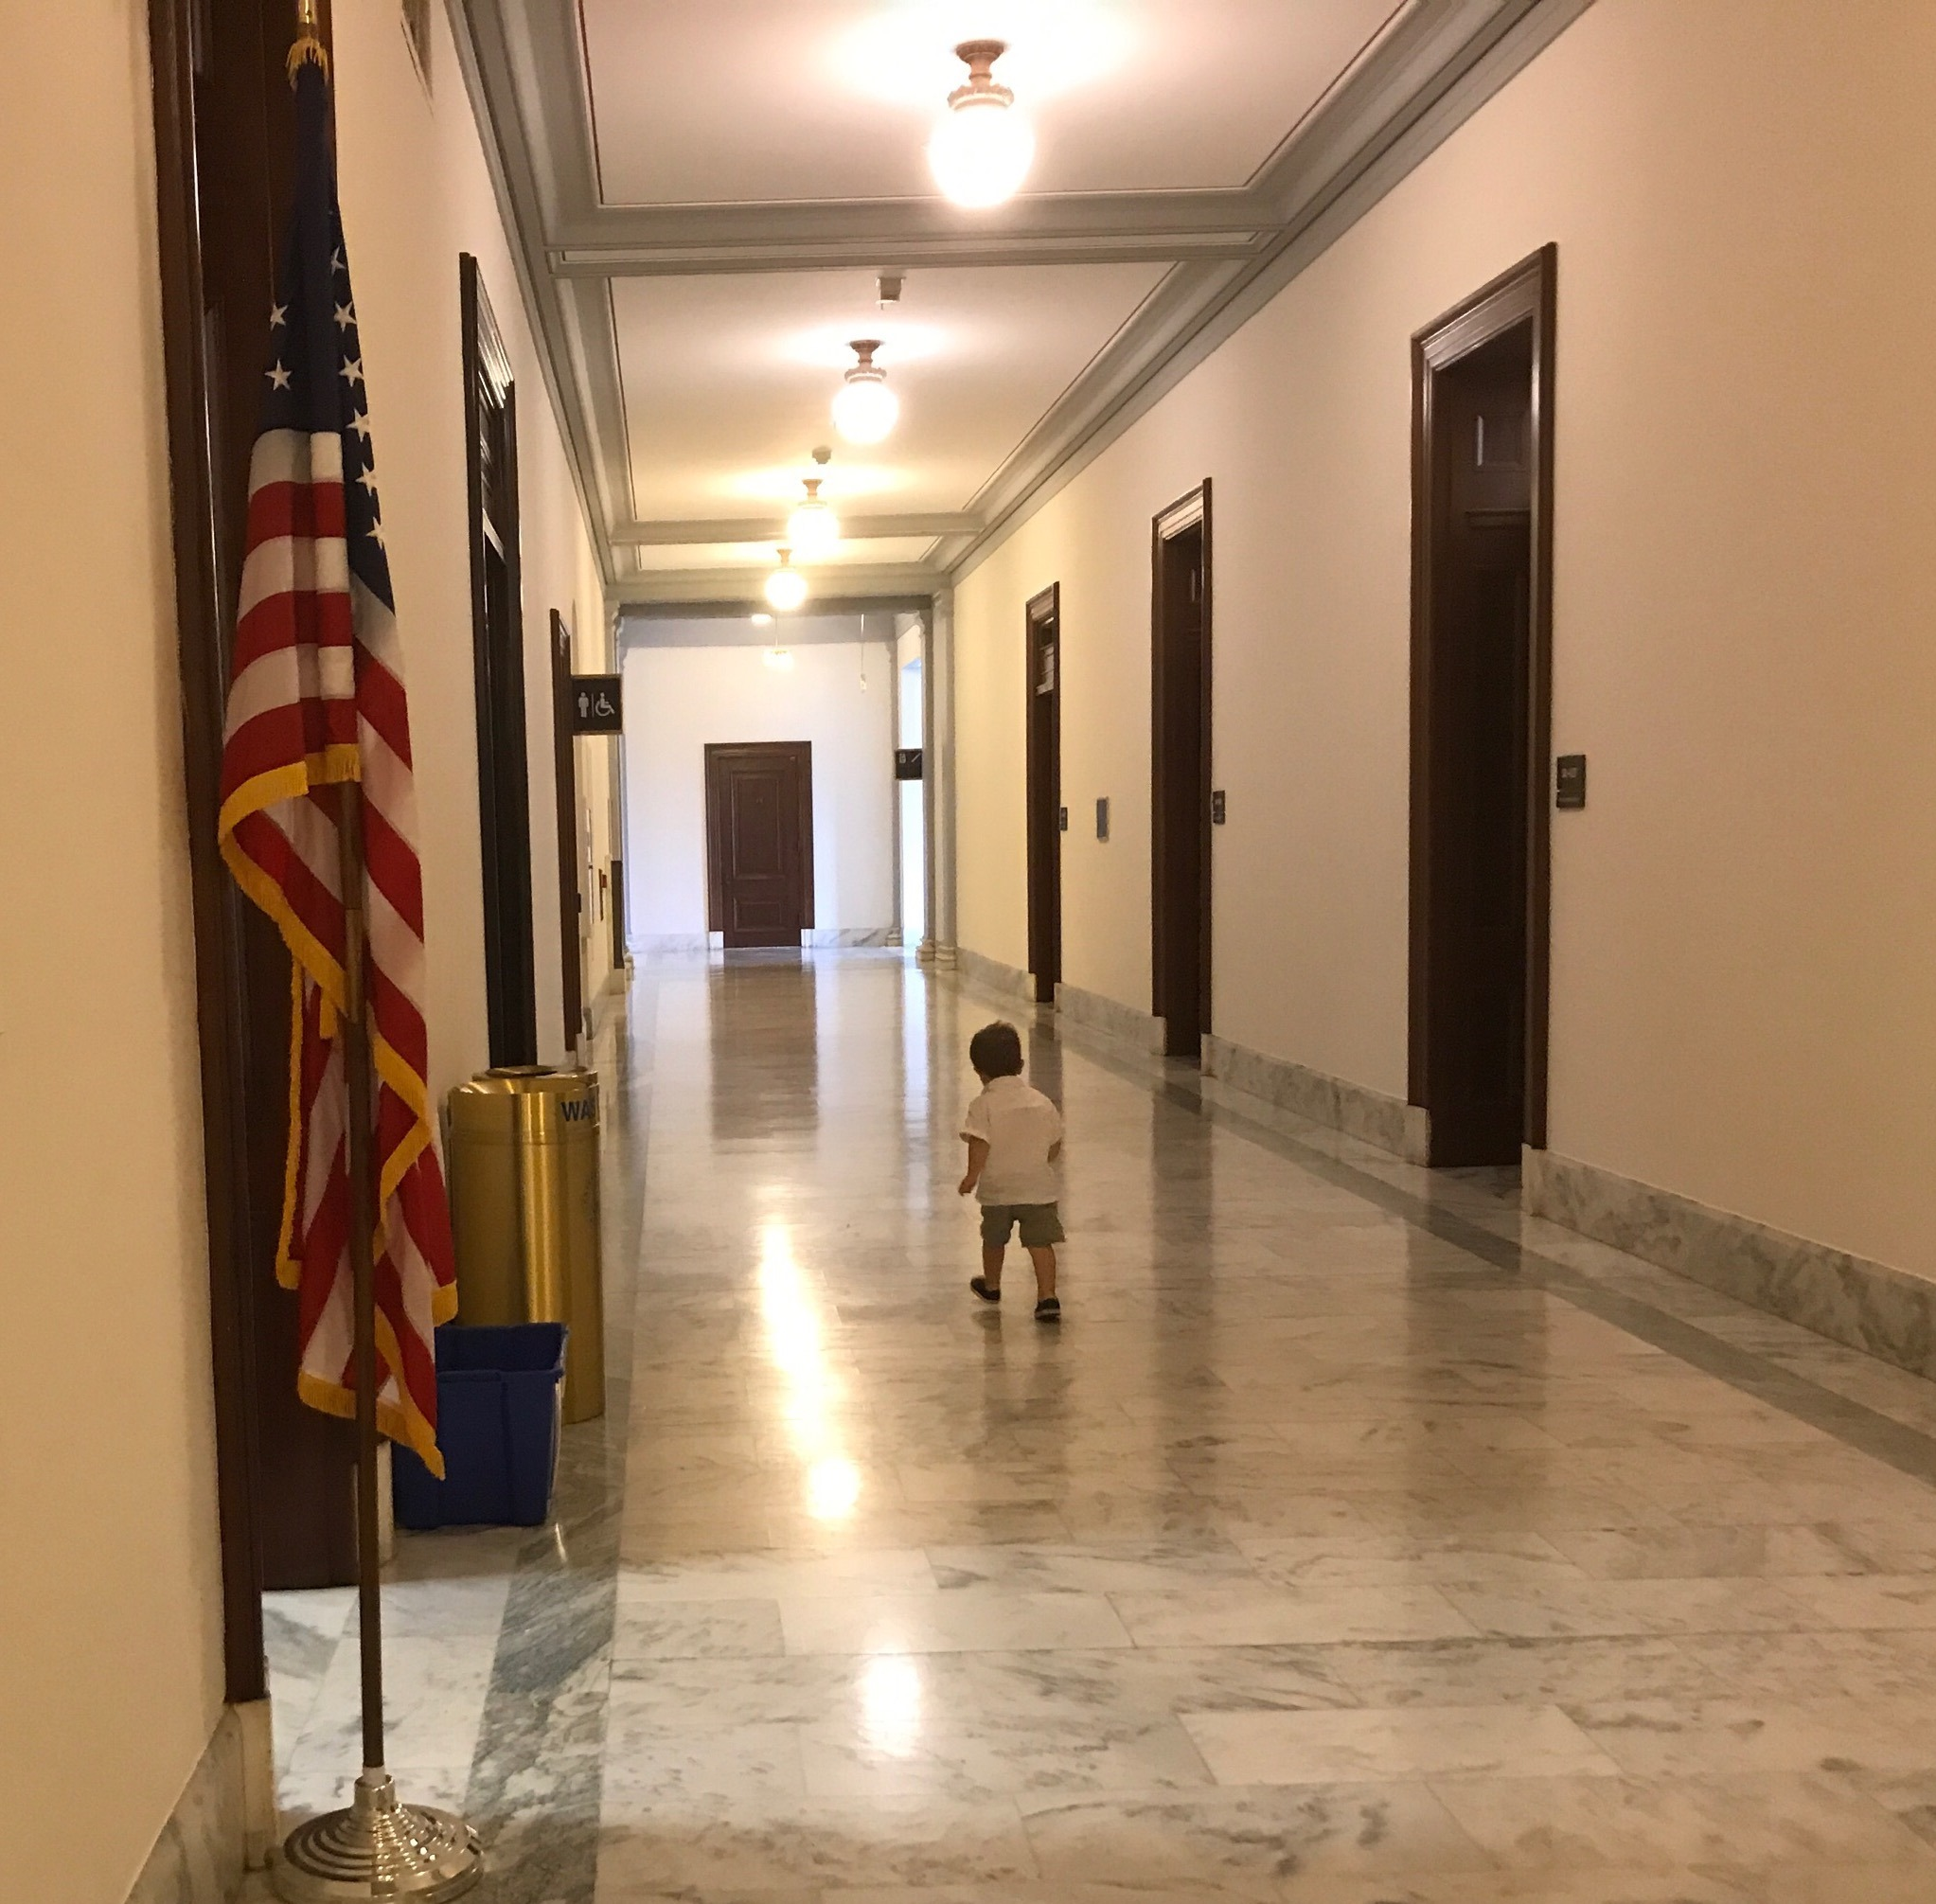 4-16_Apollo_walking_halls_of_congress.jpg